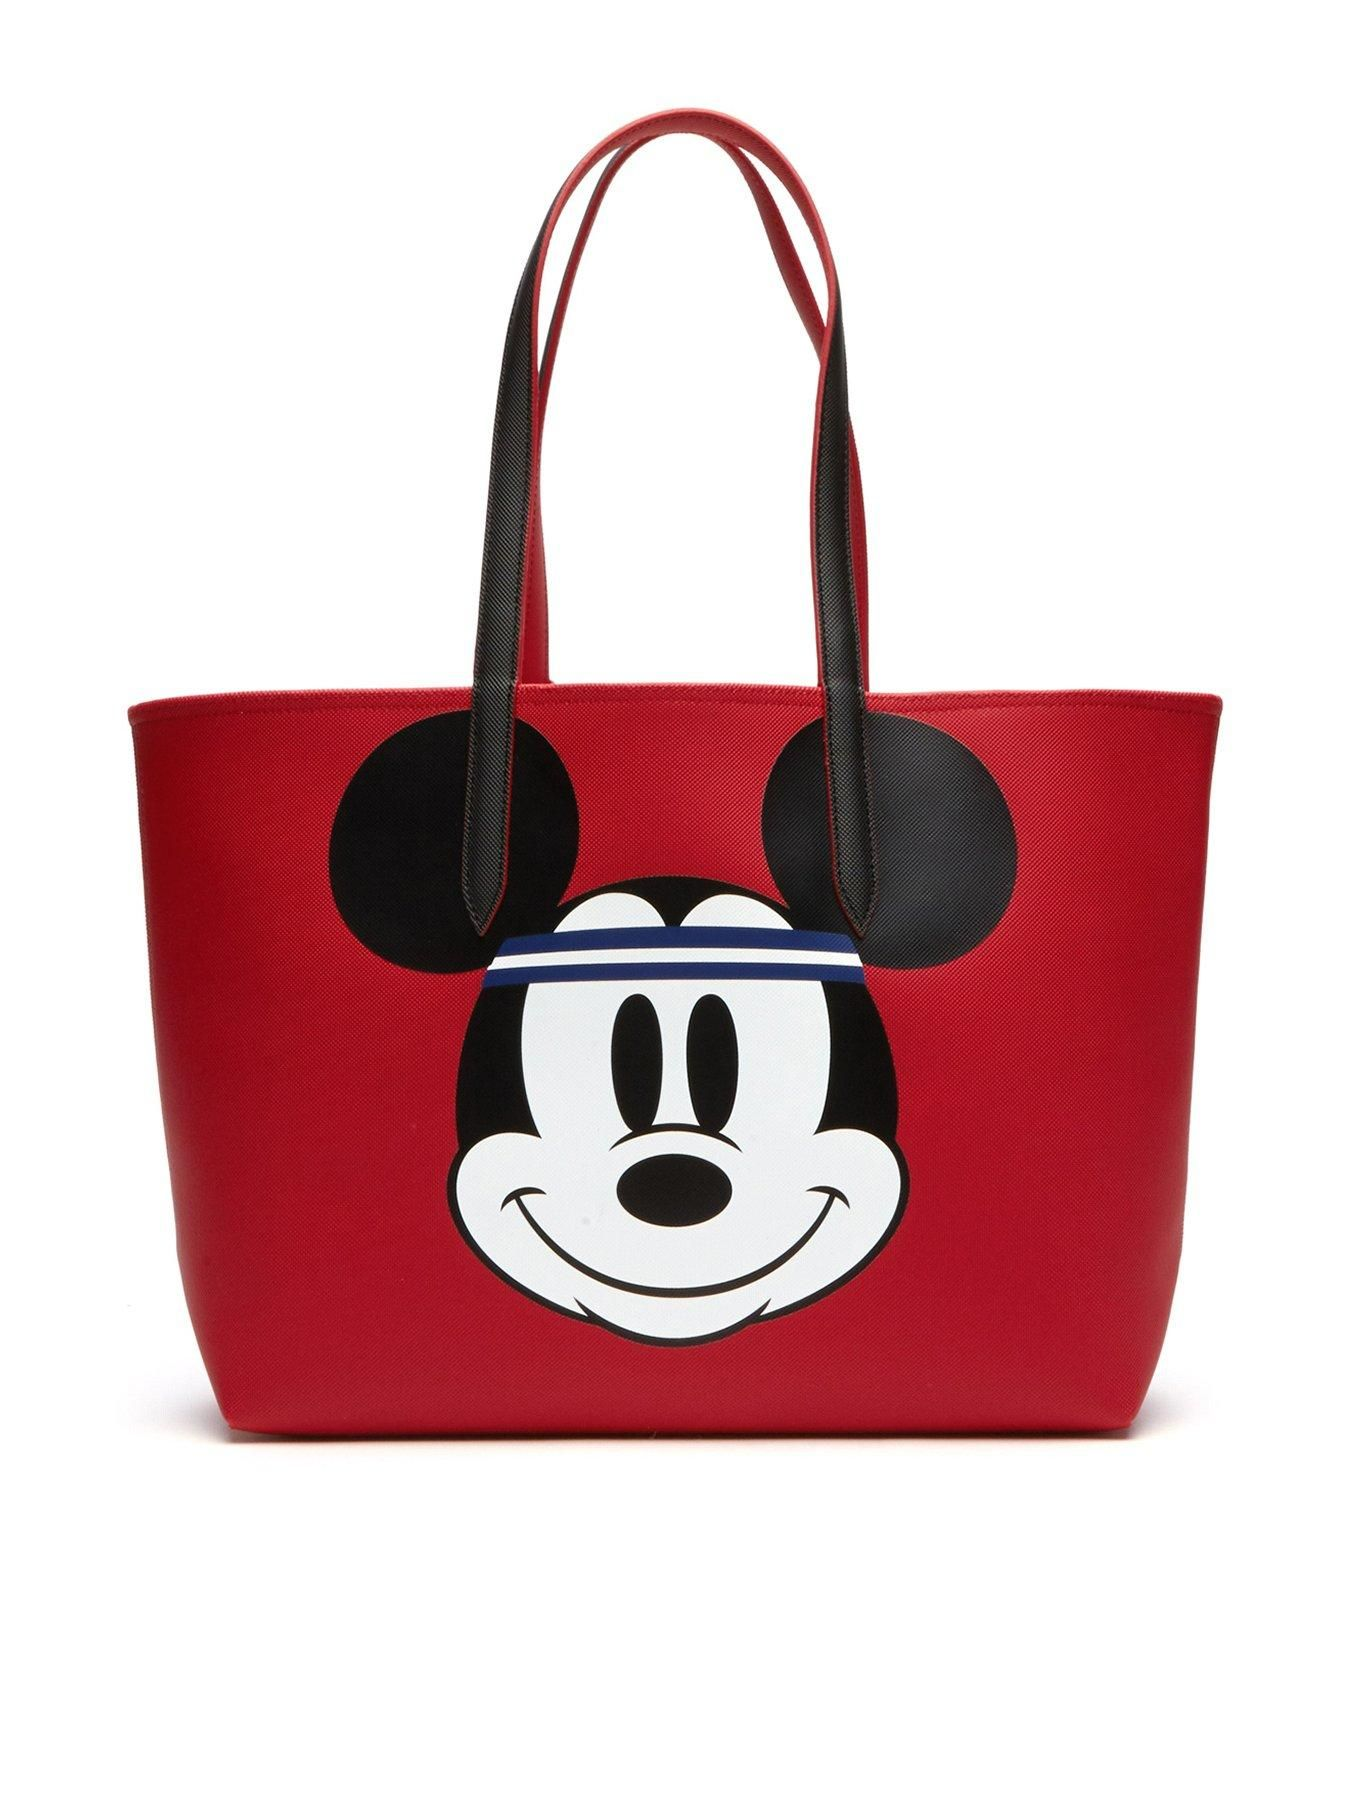 a5619280f162 Lacoste Holiday Collection Mickey Shopper Reversible Tote Bag - Red ...